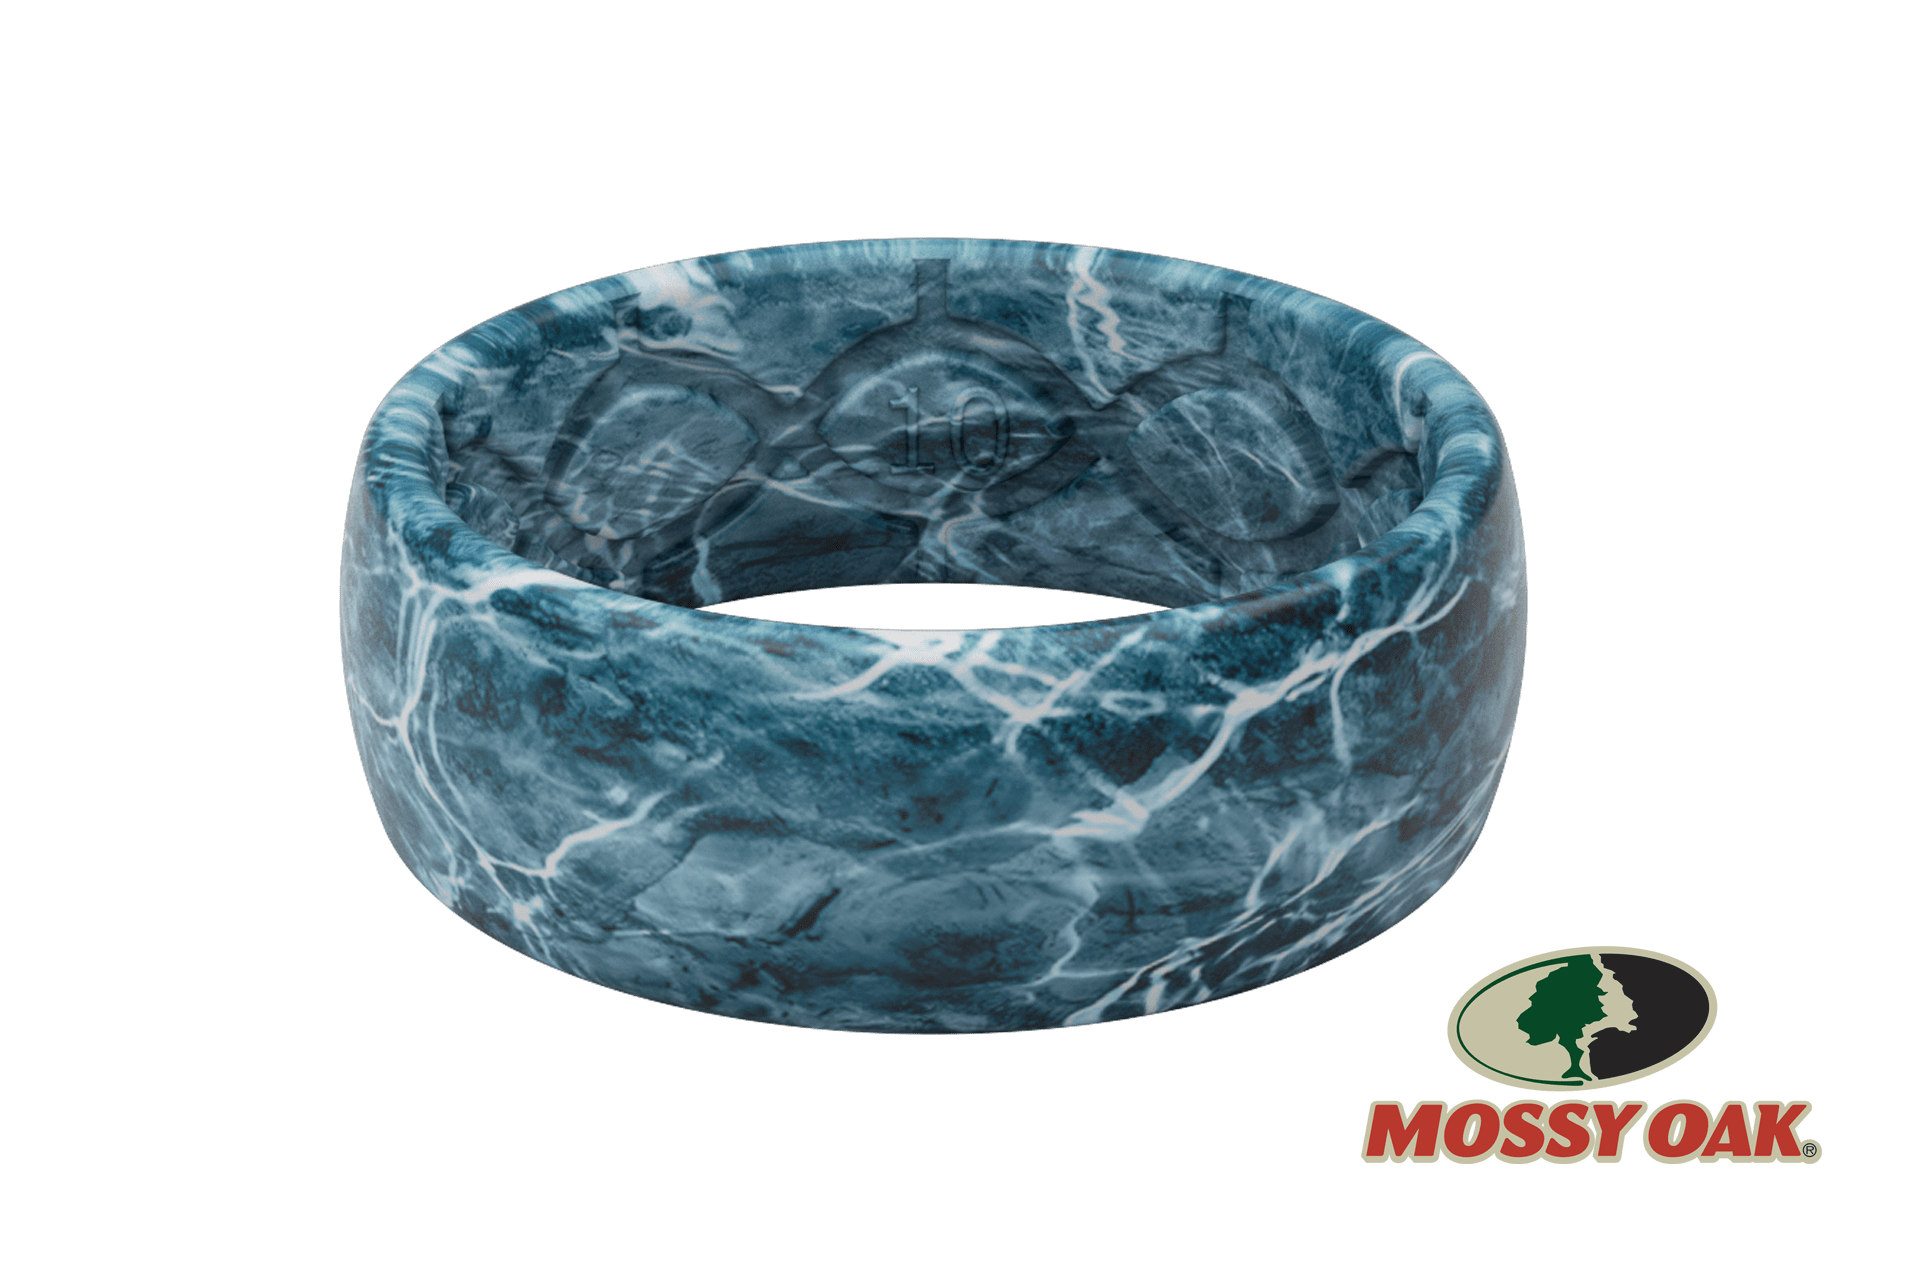 Original Camo Mossy Oak Elements Agua Spindrift Pattern  viewed on its side  viewed on its side